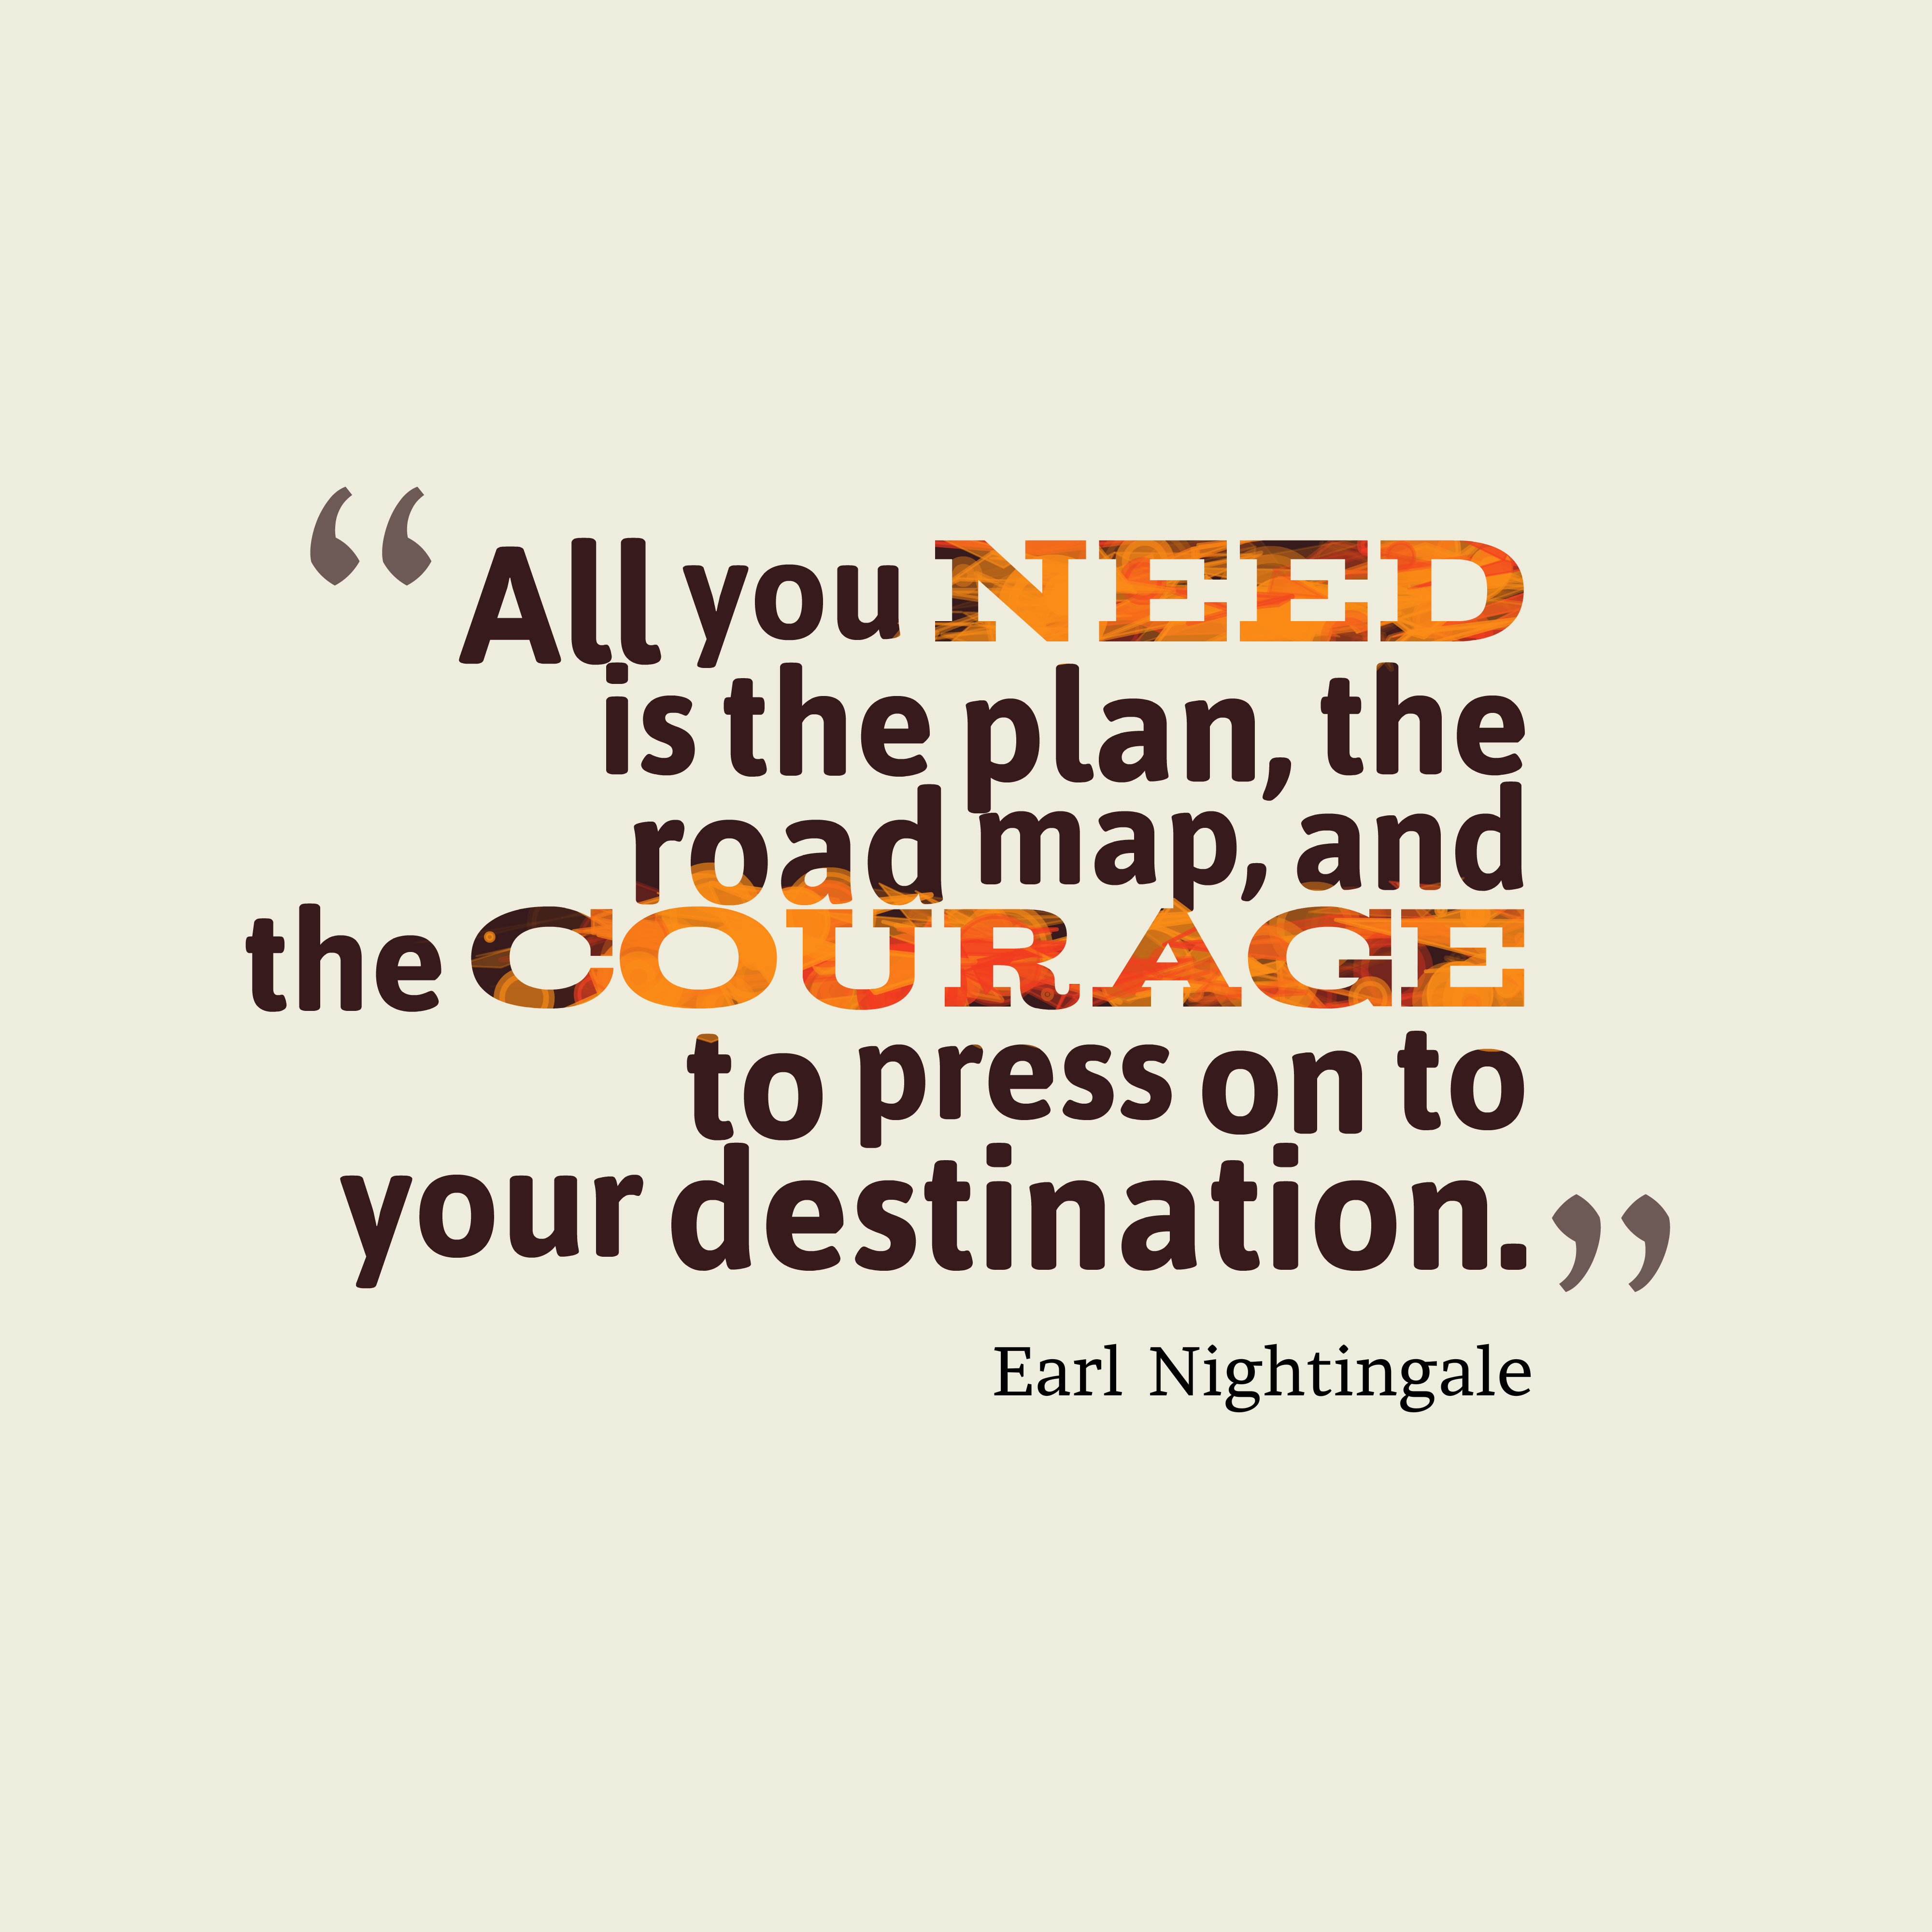 Picture Earl Nightingale Quote About Plan Quotescover Com